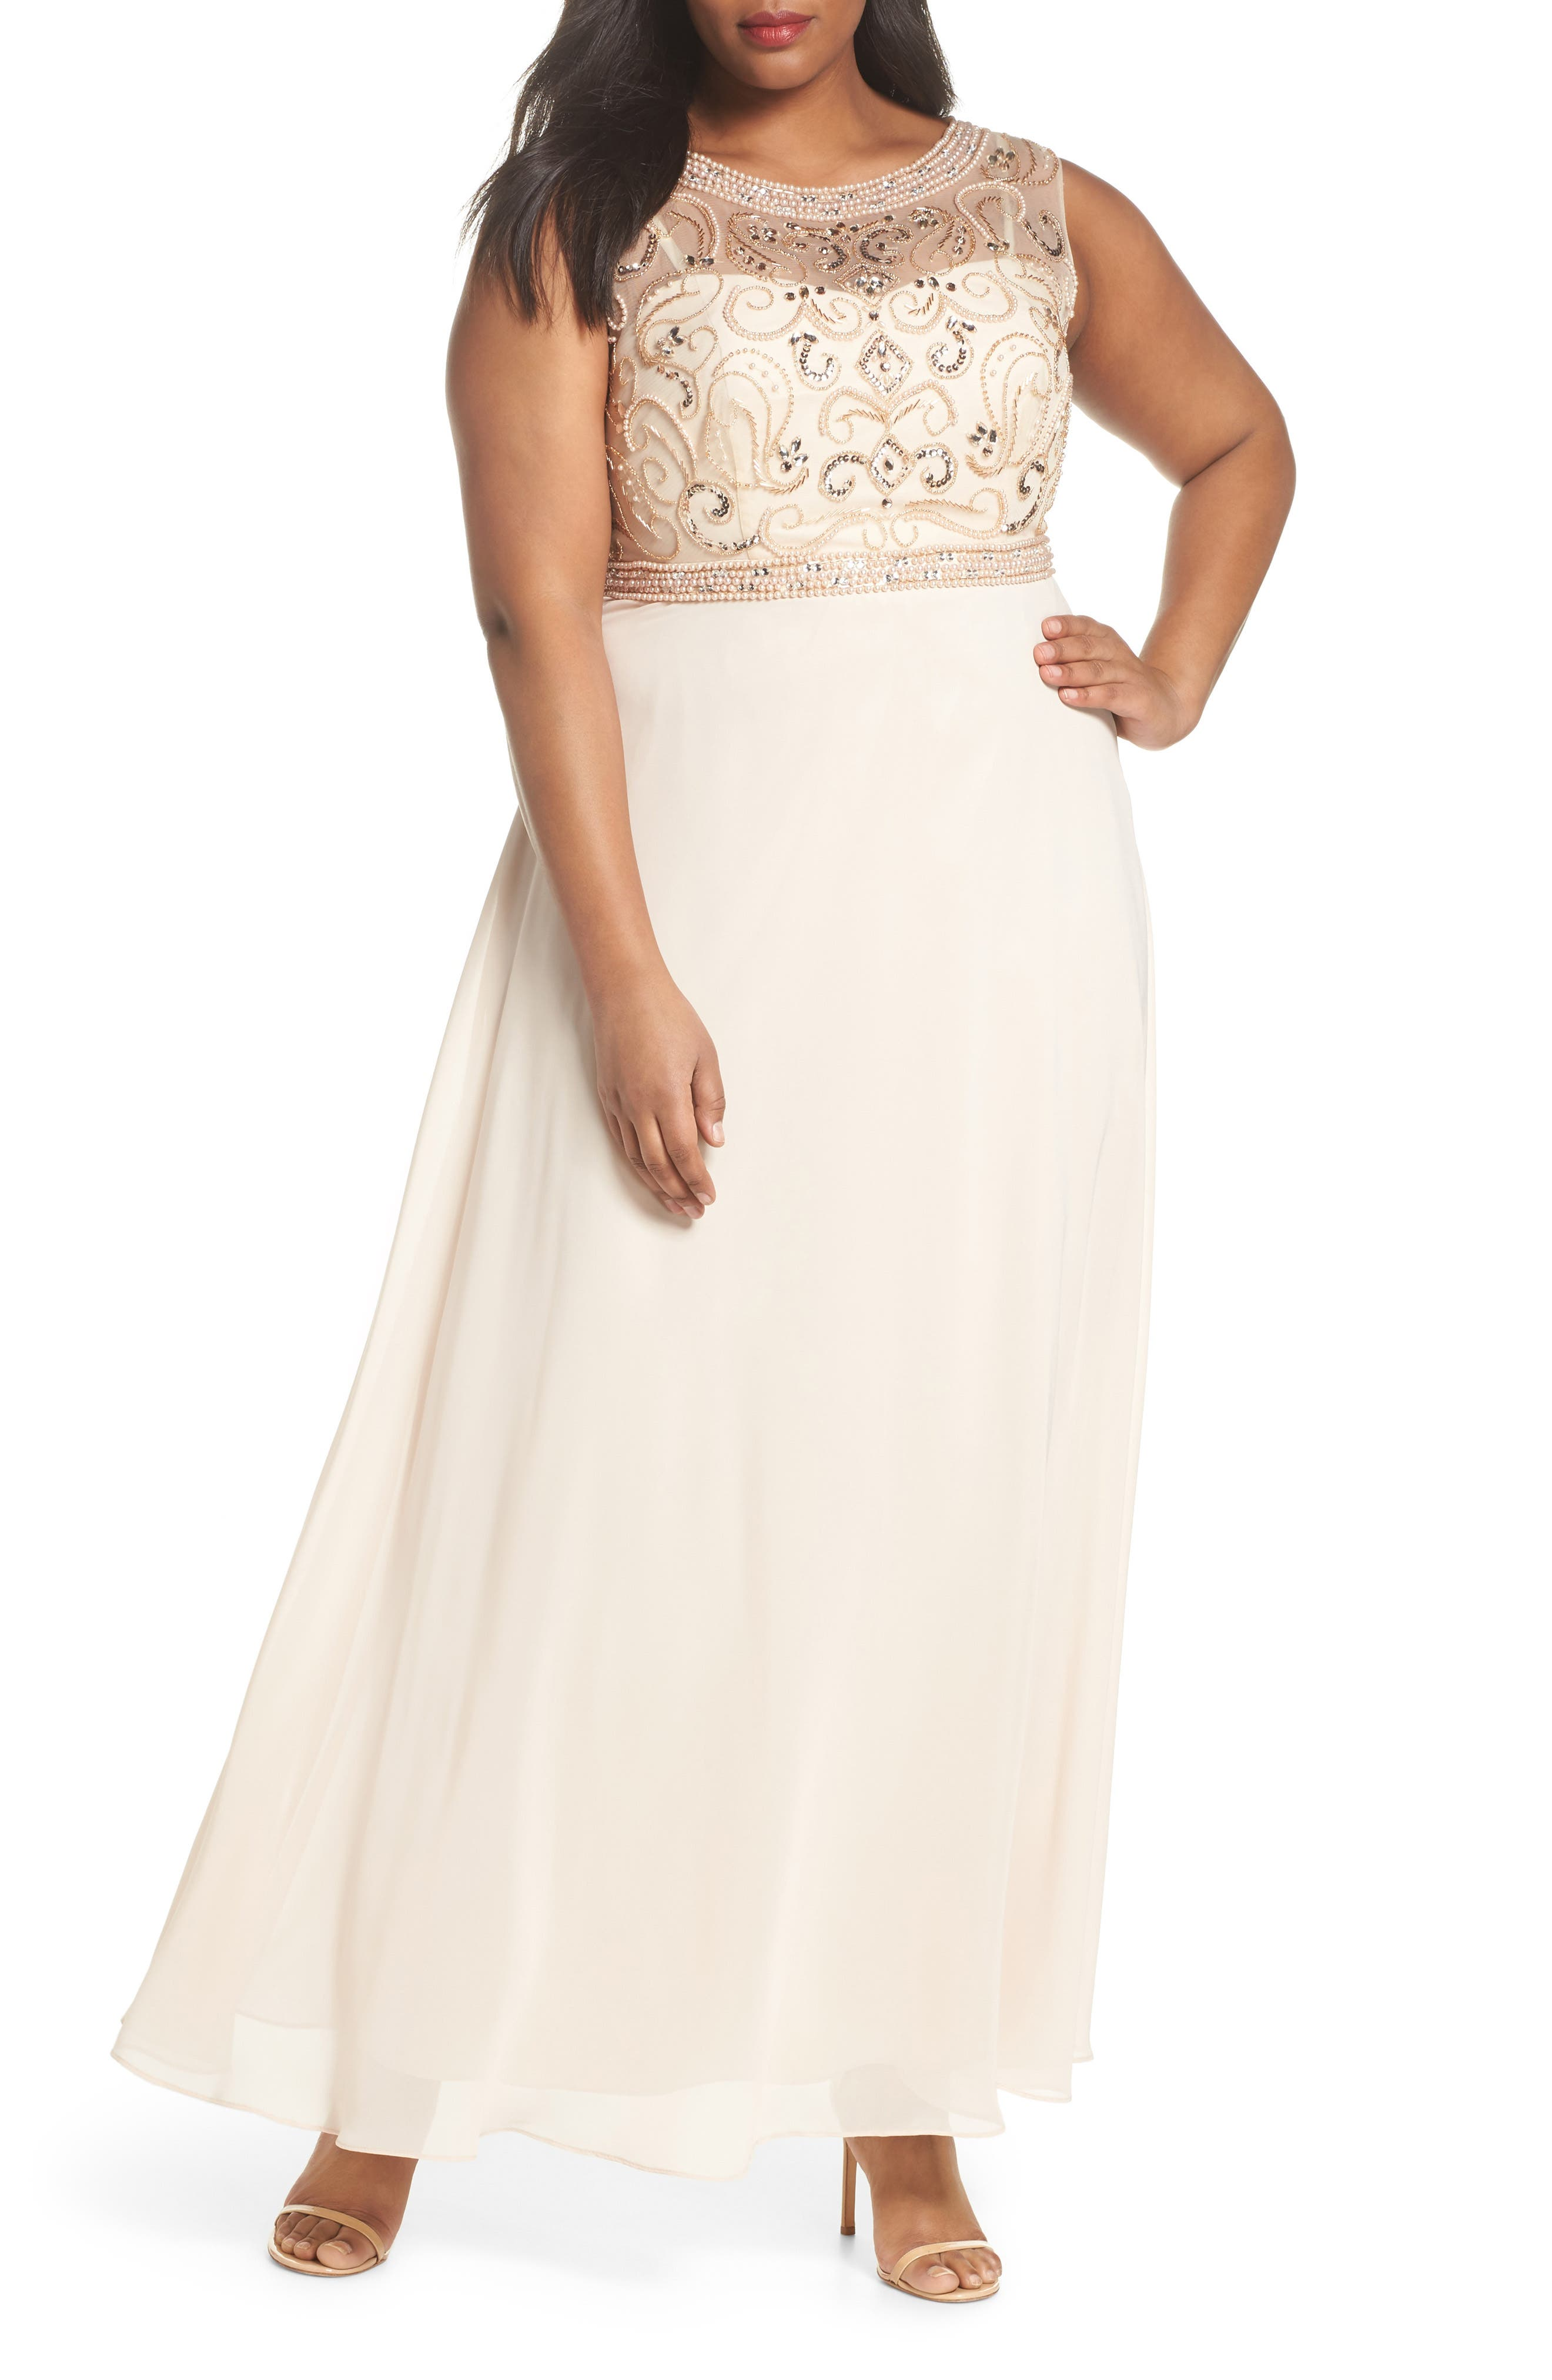 Main Image - Decode 1.8 Sleeveless Beaded Gown (Plus Size)